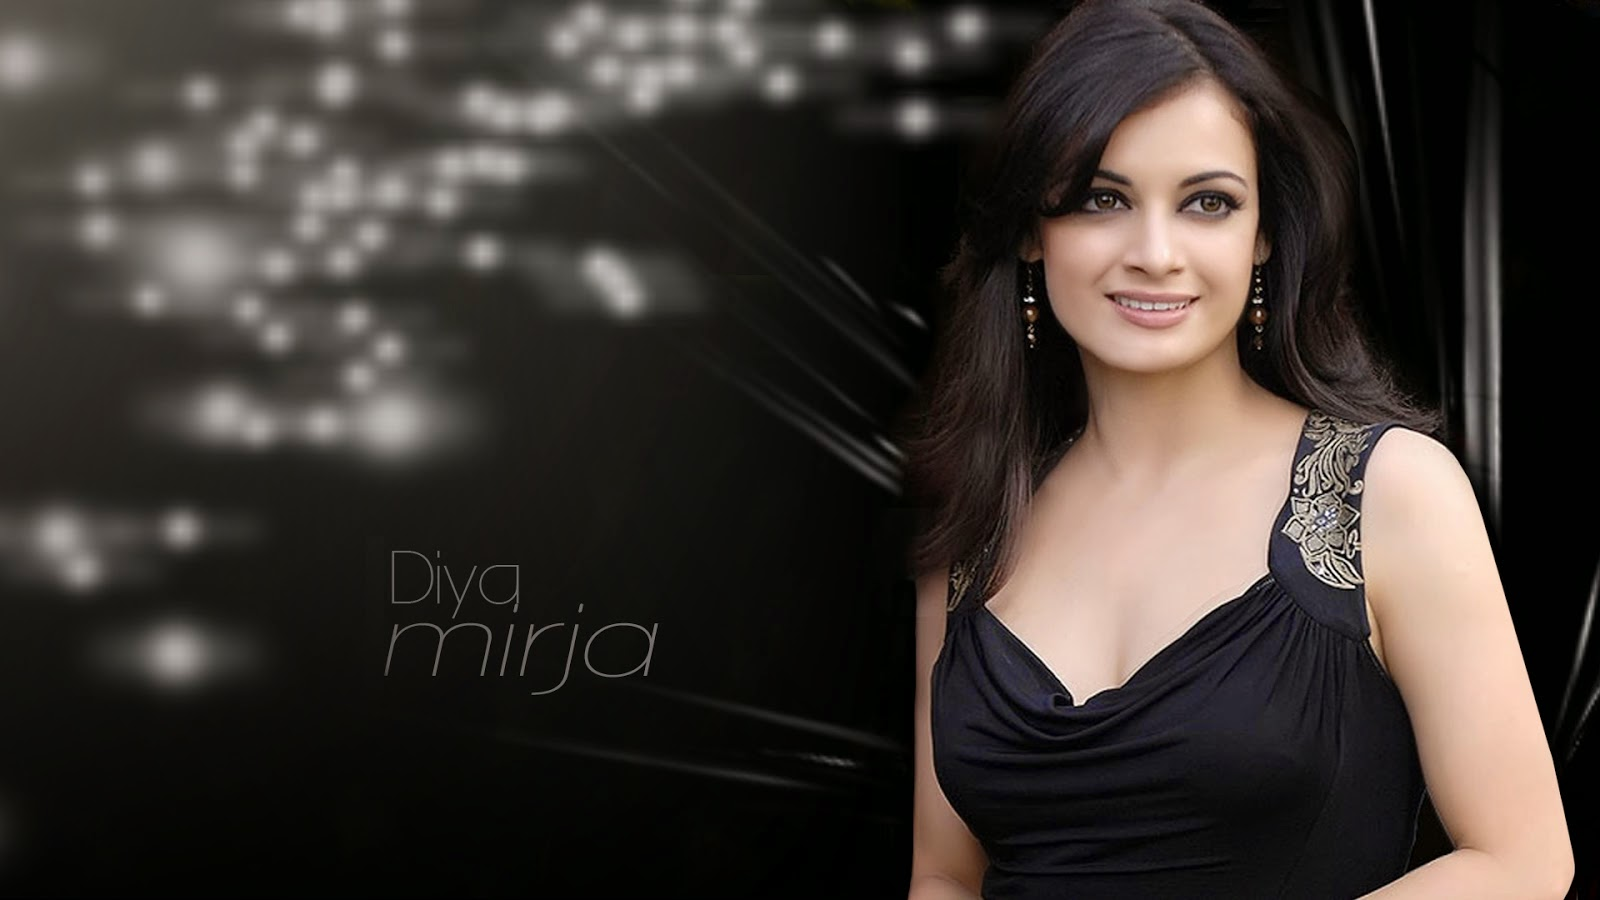 Celebrity hd wallpapers dia mirza high resolution images - High resolution wallpaper celebrity ...